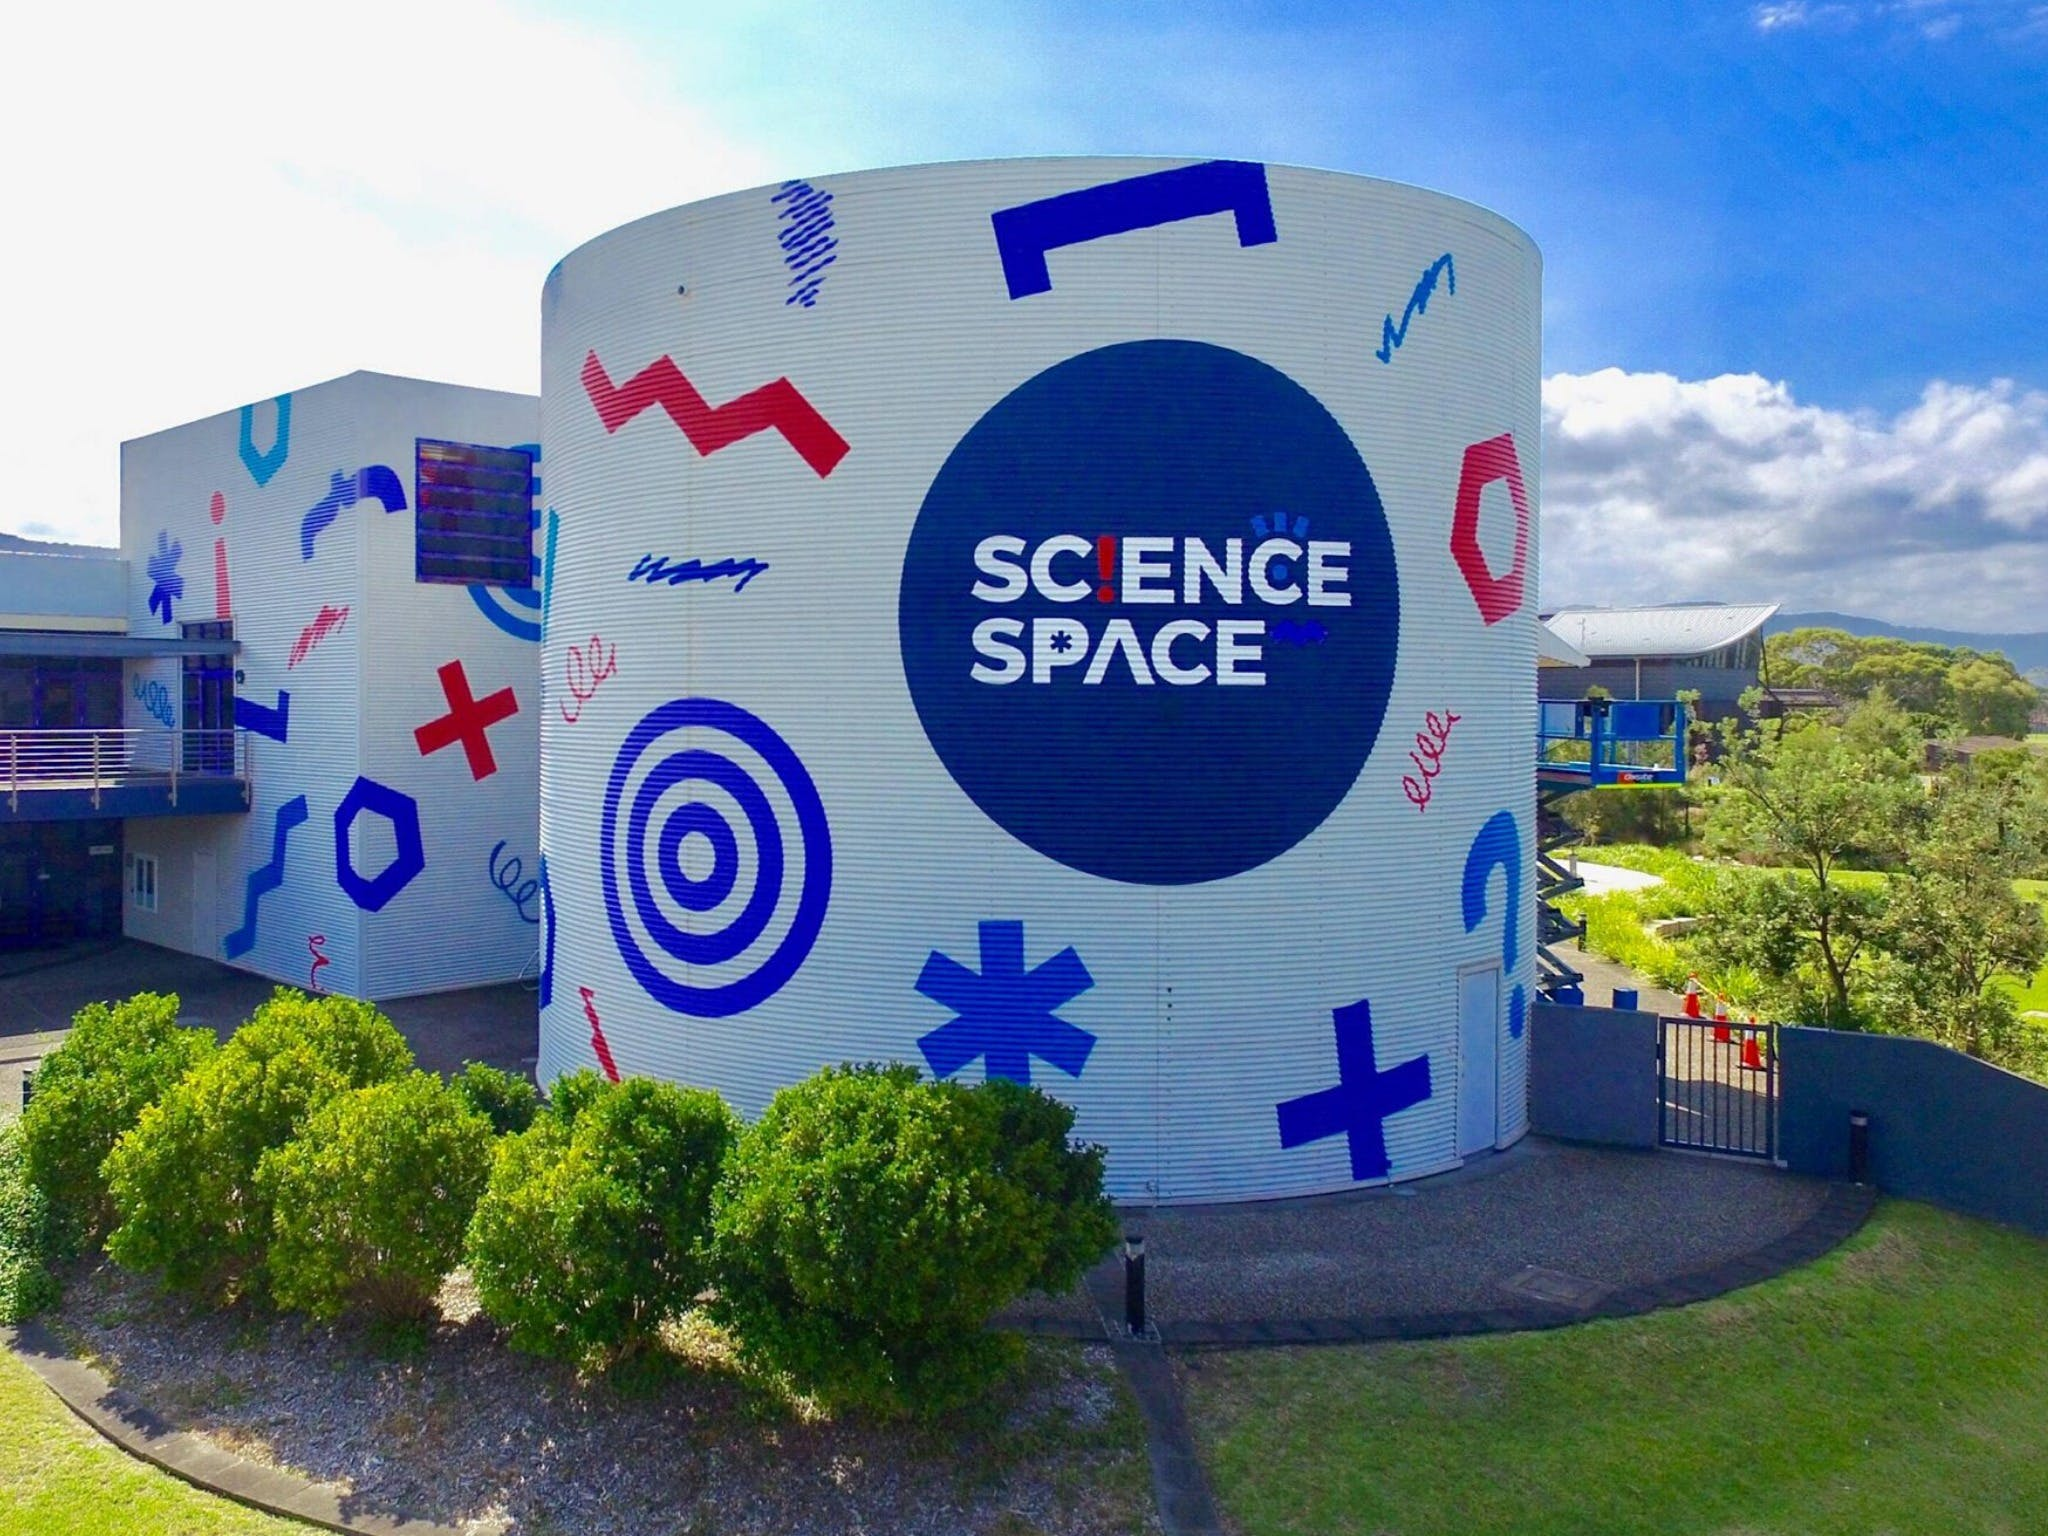 Science Space Grand Reopening Celebration - Pubs Perth